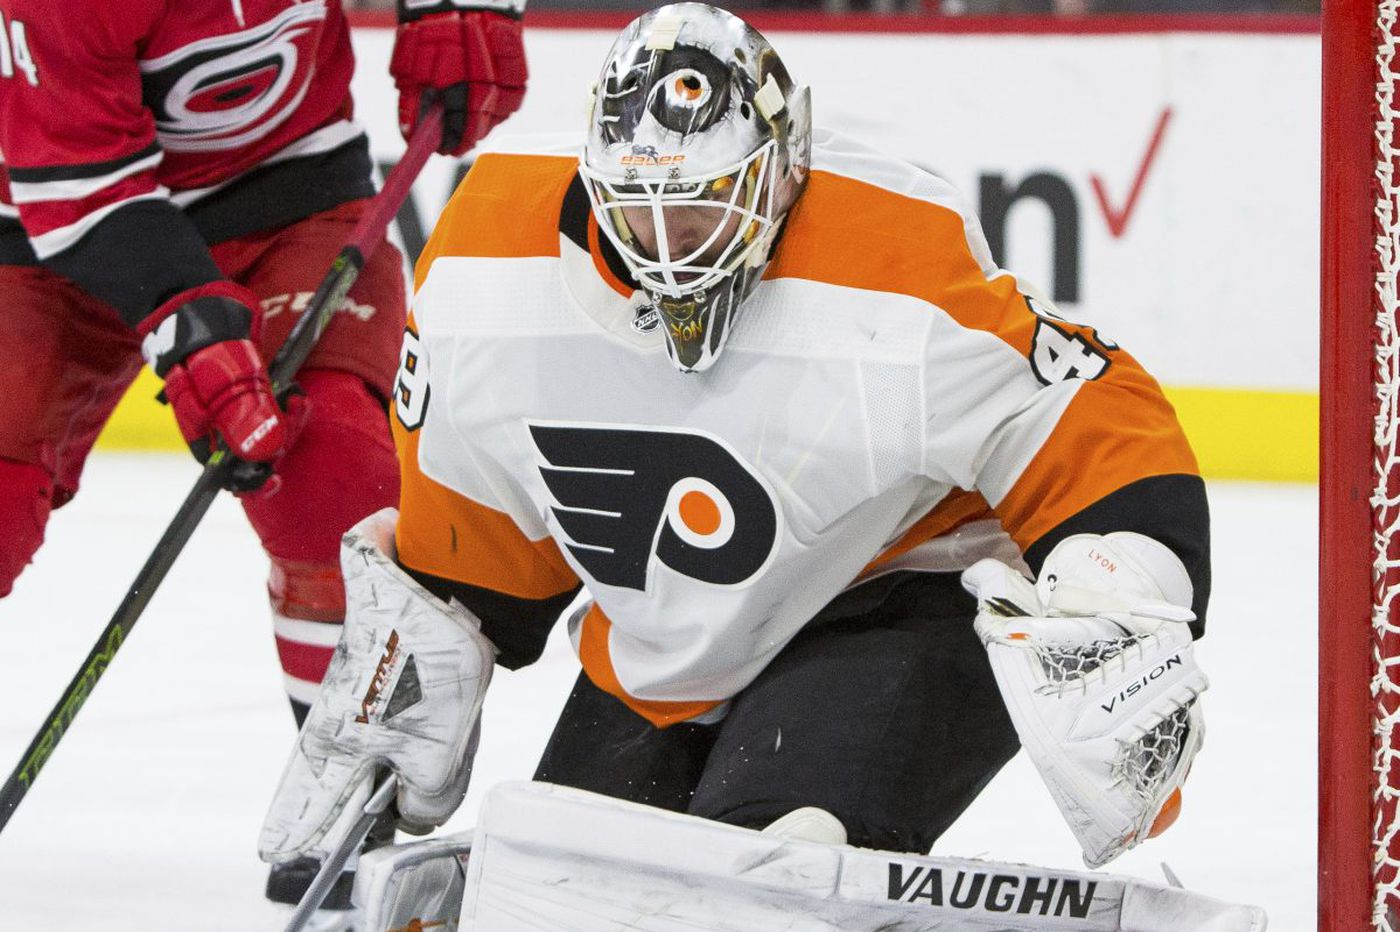 Furious rally lifts Flyers to much-needed win in Carolina